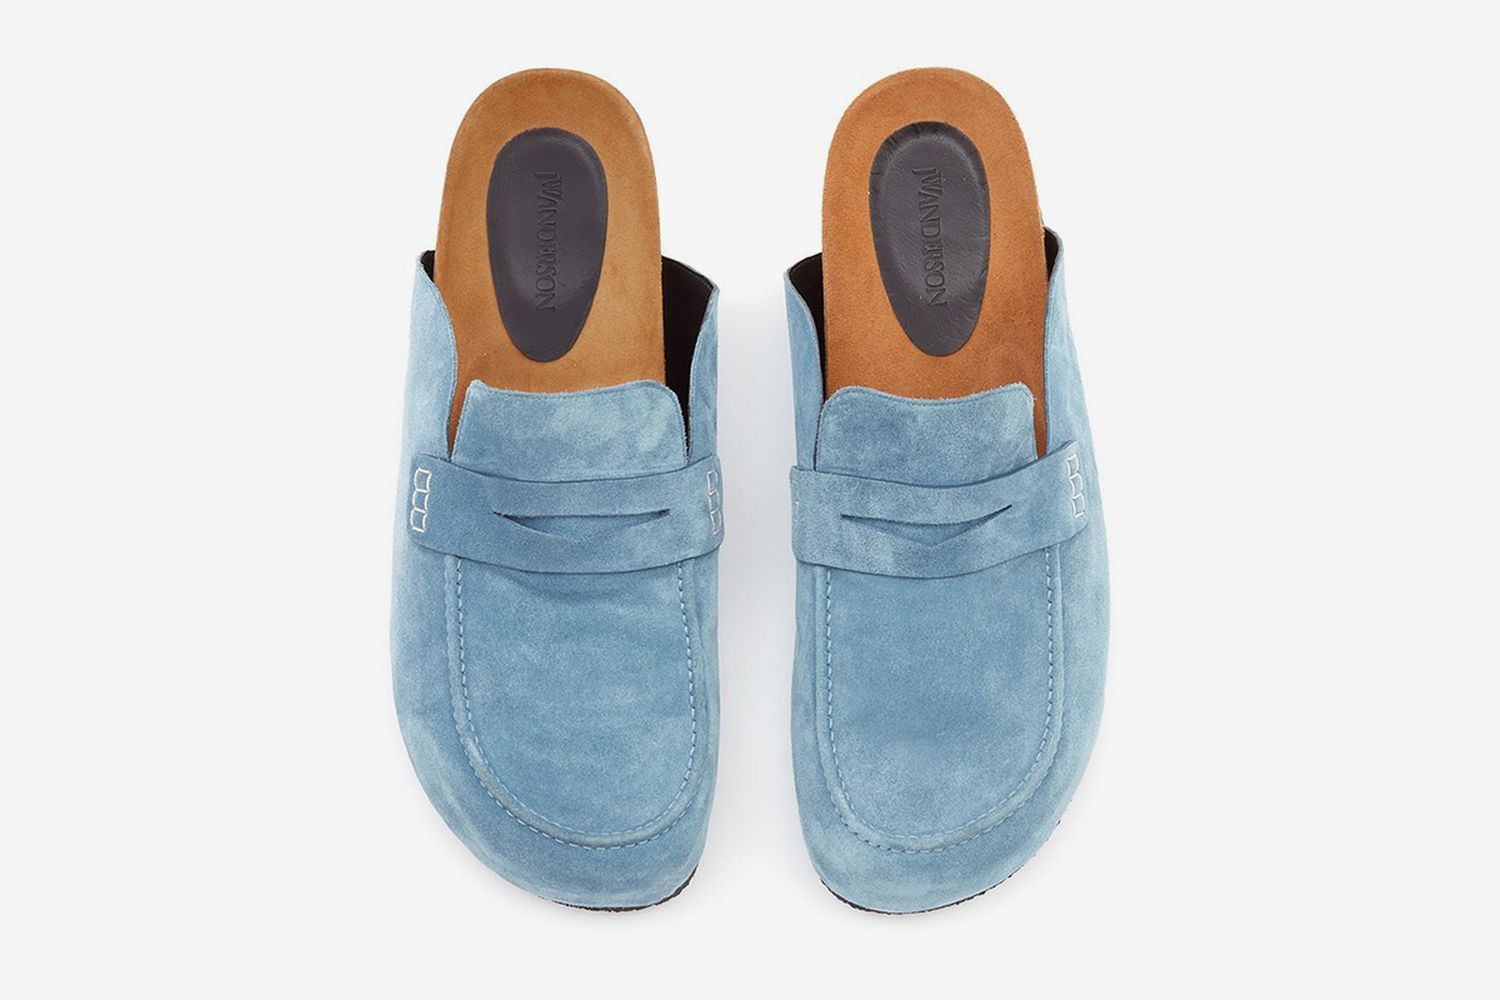 Suede Loafer Mules